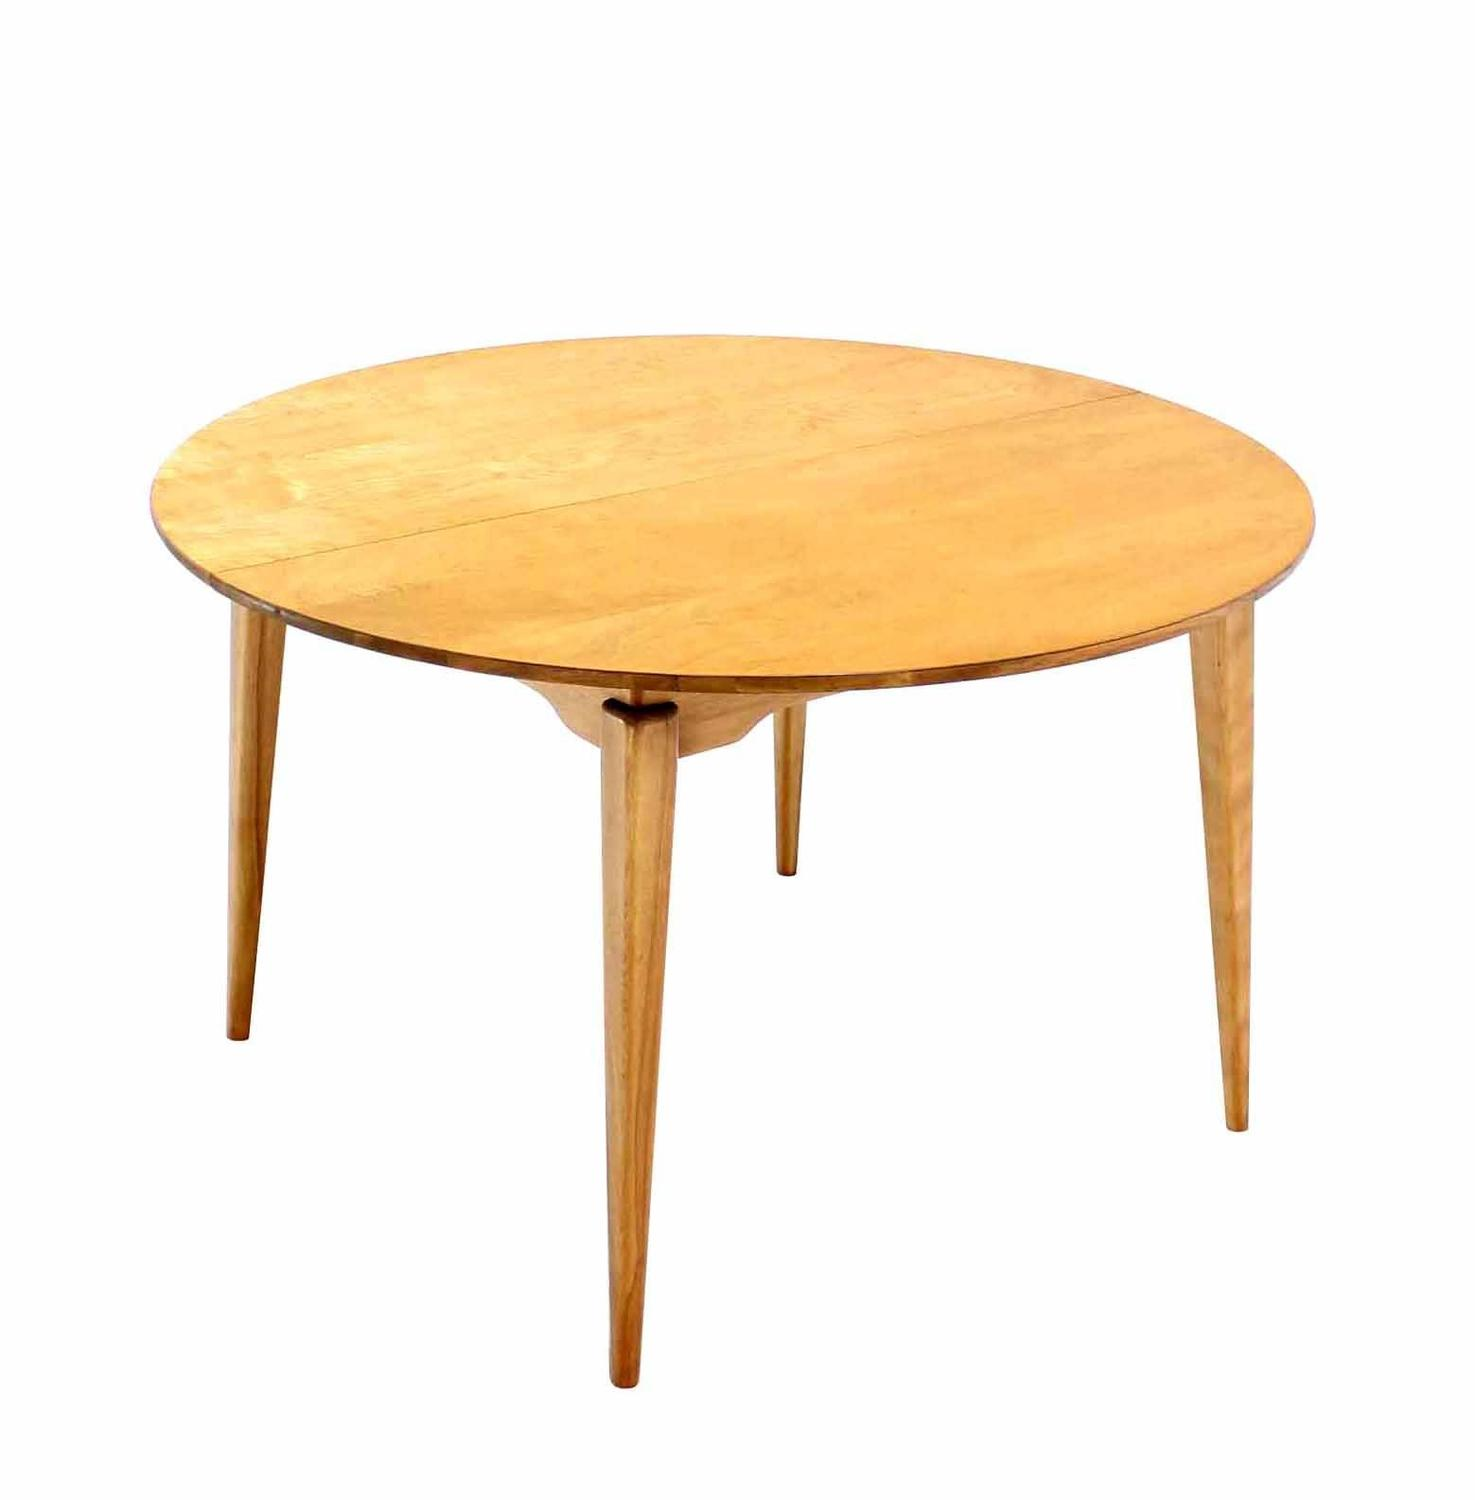 Round birch dining table with three leaves for sale at 1stdibs for 3 leaf dining room tables